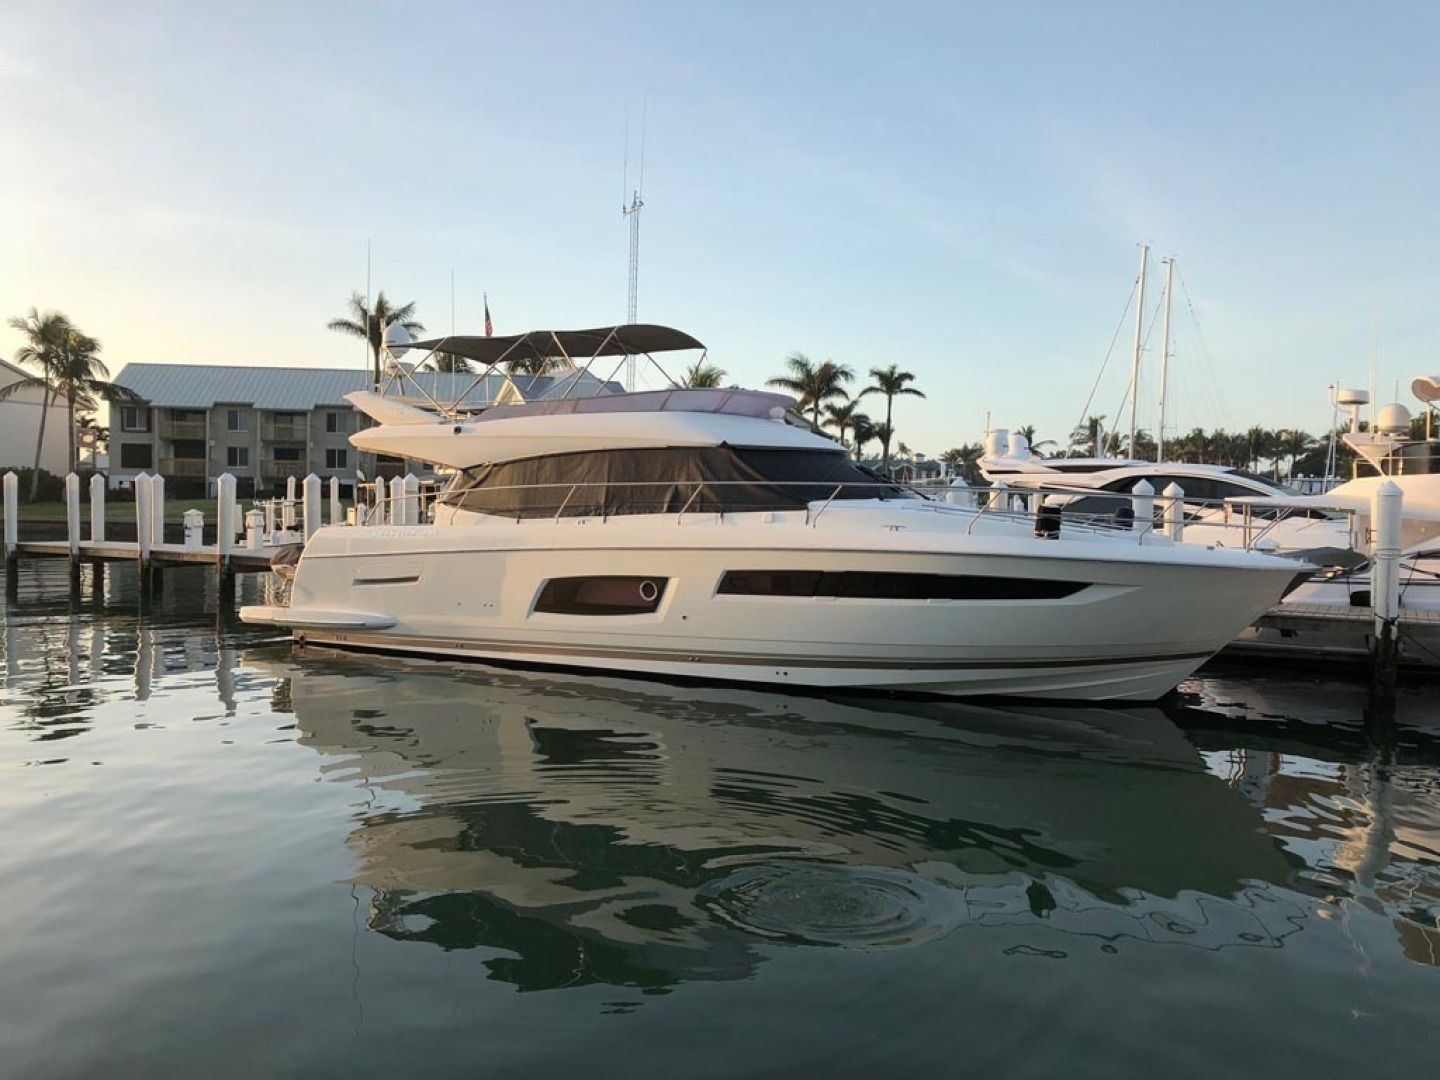 Prestige-550 2015-Higher Powered II Palm Coast-Florida-United States-Starboard At Dock-1300868 | Thumbnail